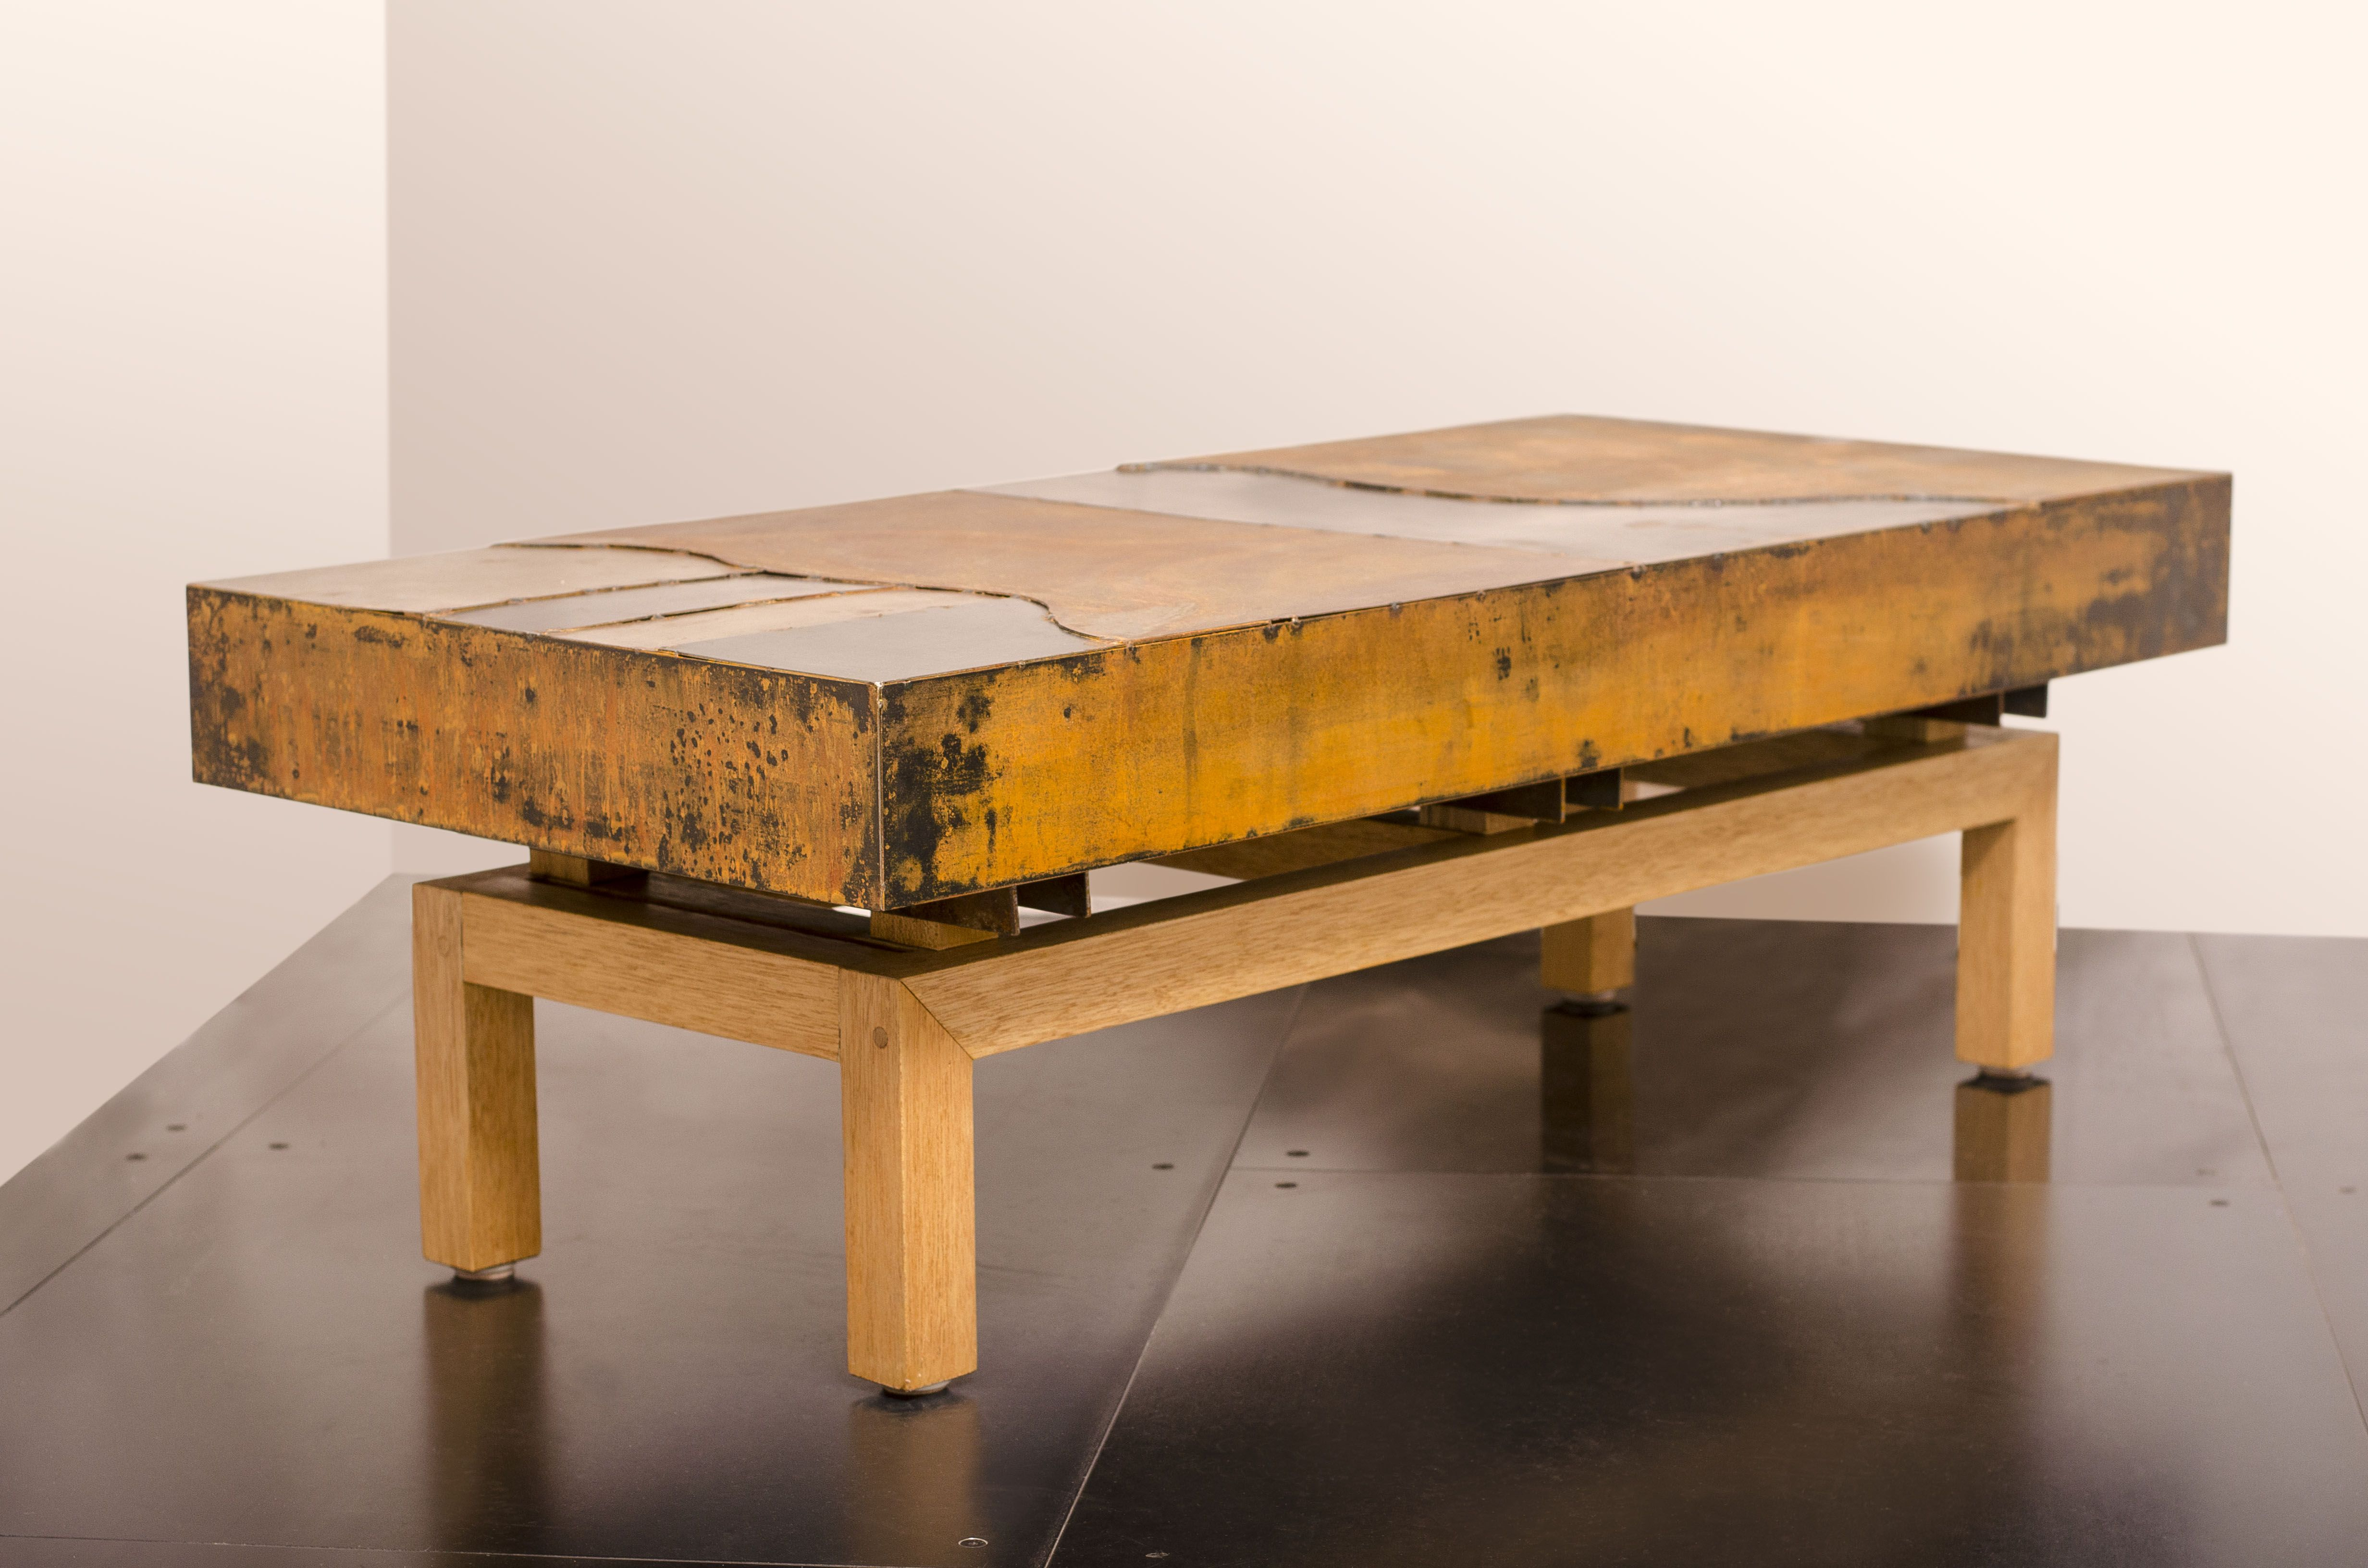 Hand Crafted Industrial Steel Coffee Table | Metal Mix Graft, Wood Intended For Mix Patina Metal Frame Console Tables (View 27 of 30)